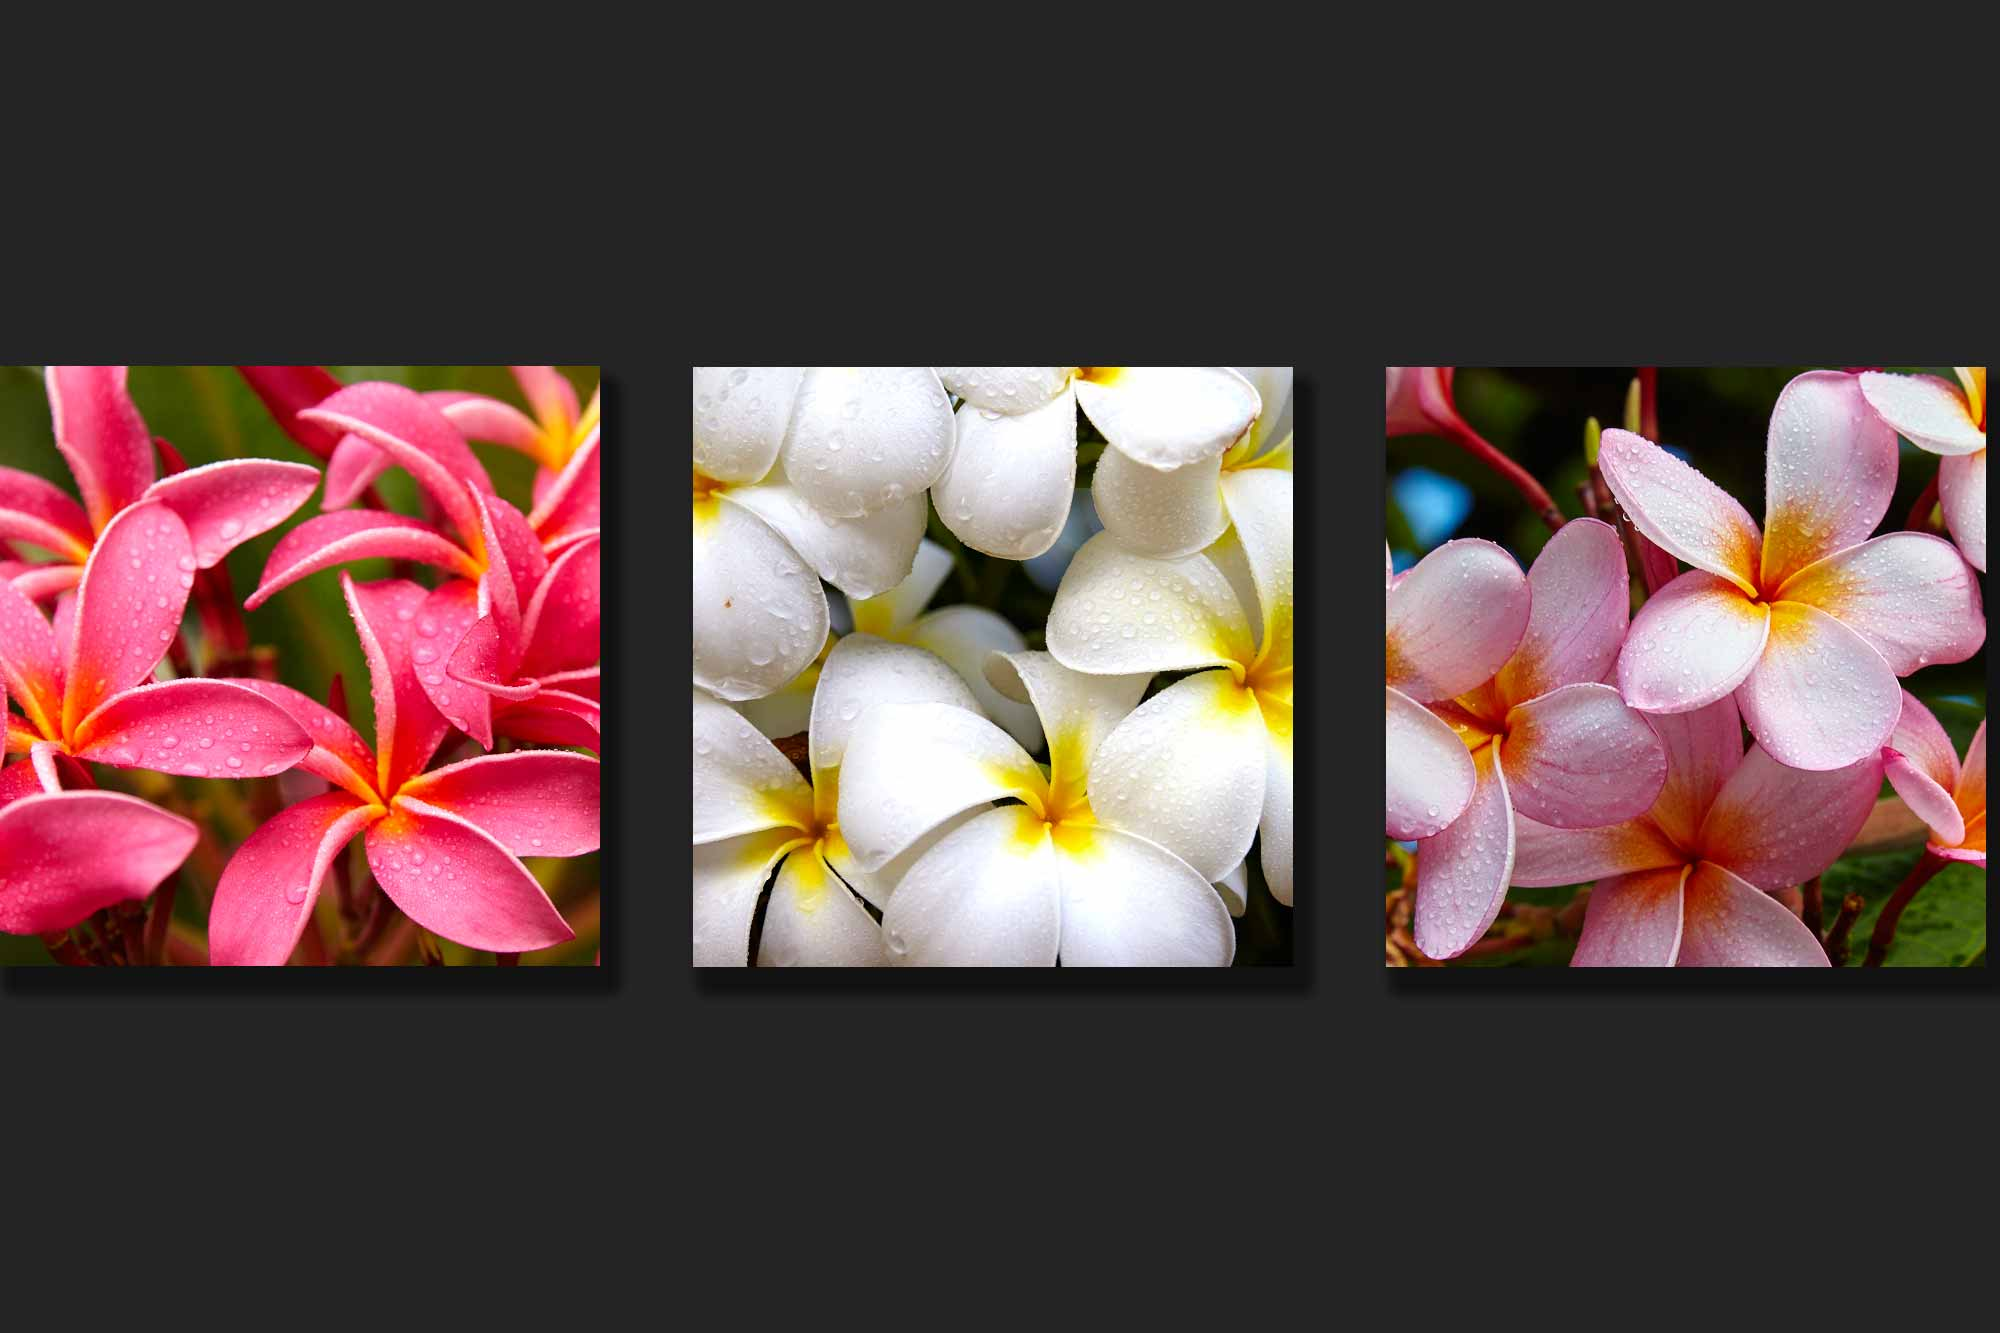 Hawaiian blossoms plumeria david balyeat photography portfolio plumeria flowers hawaiian blossoms honolulu high definition hd professional landscape photography izmirmasajfo Choice Image